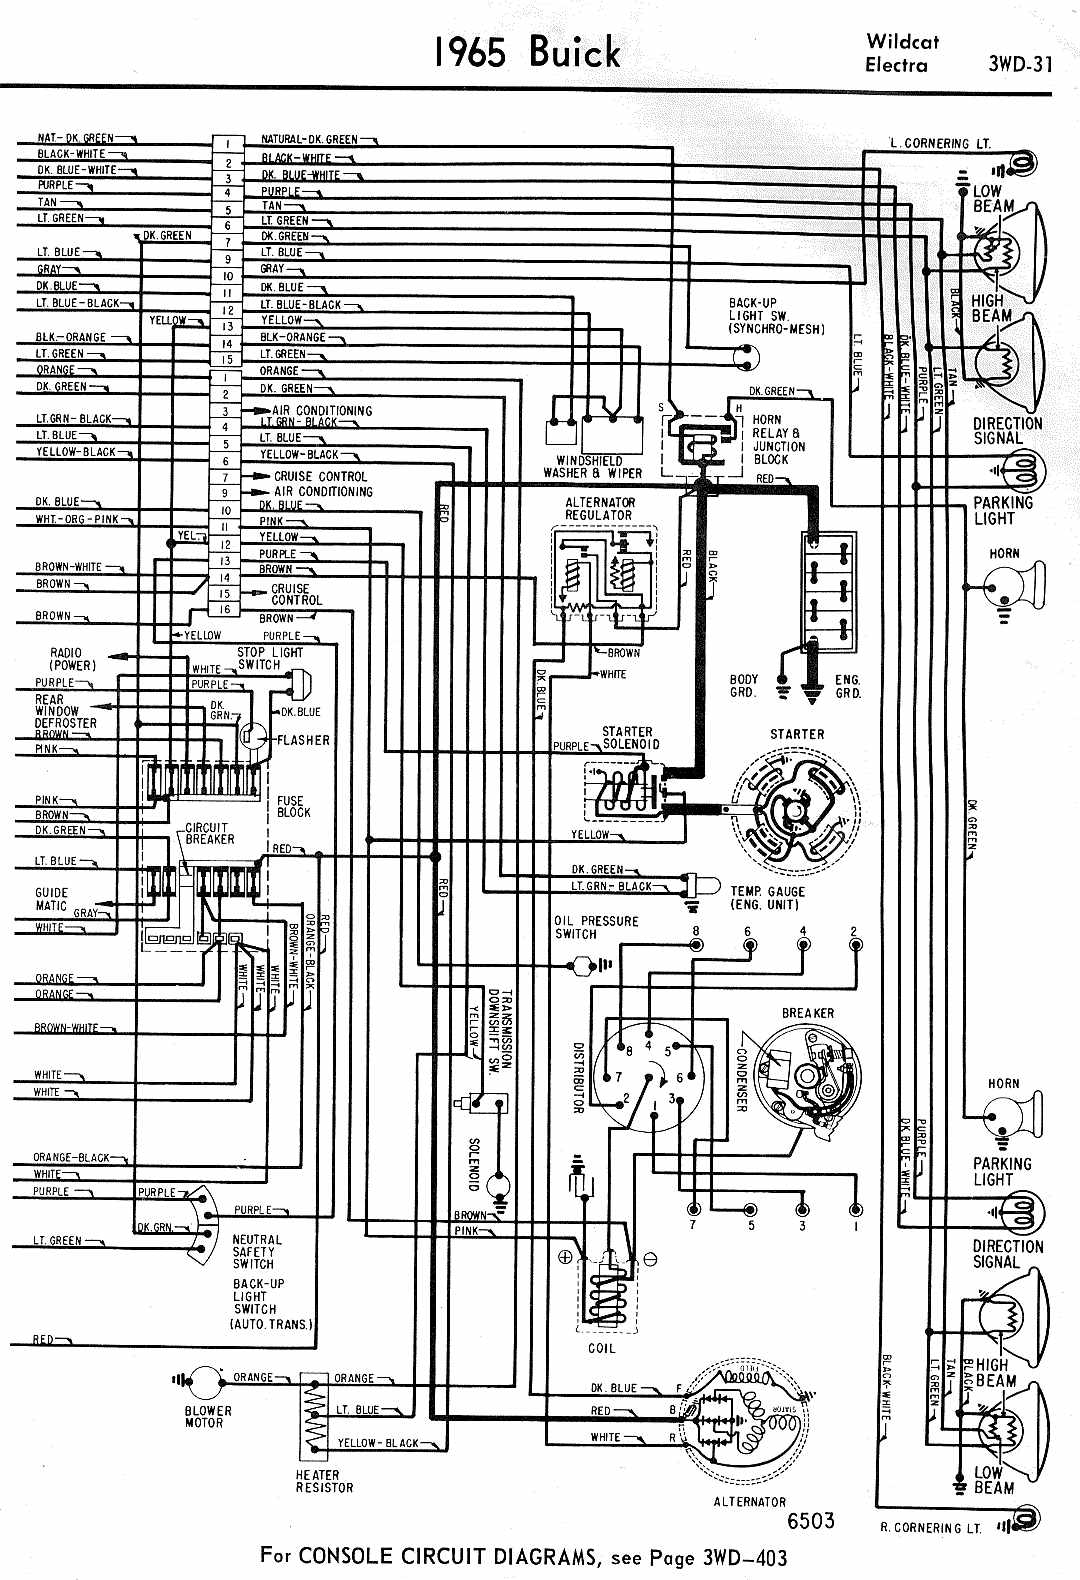 medium resolution of wiring diagrams of 1965 buick riviera part 1 wiring diagram data val wiring diagram for 1963 buick special and skylark part 2